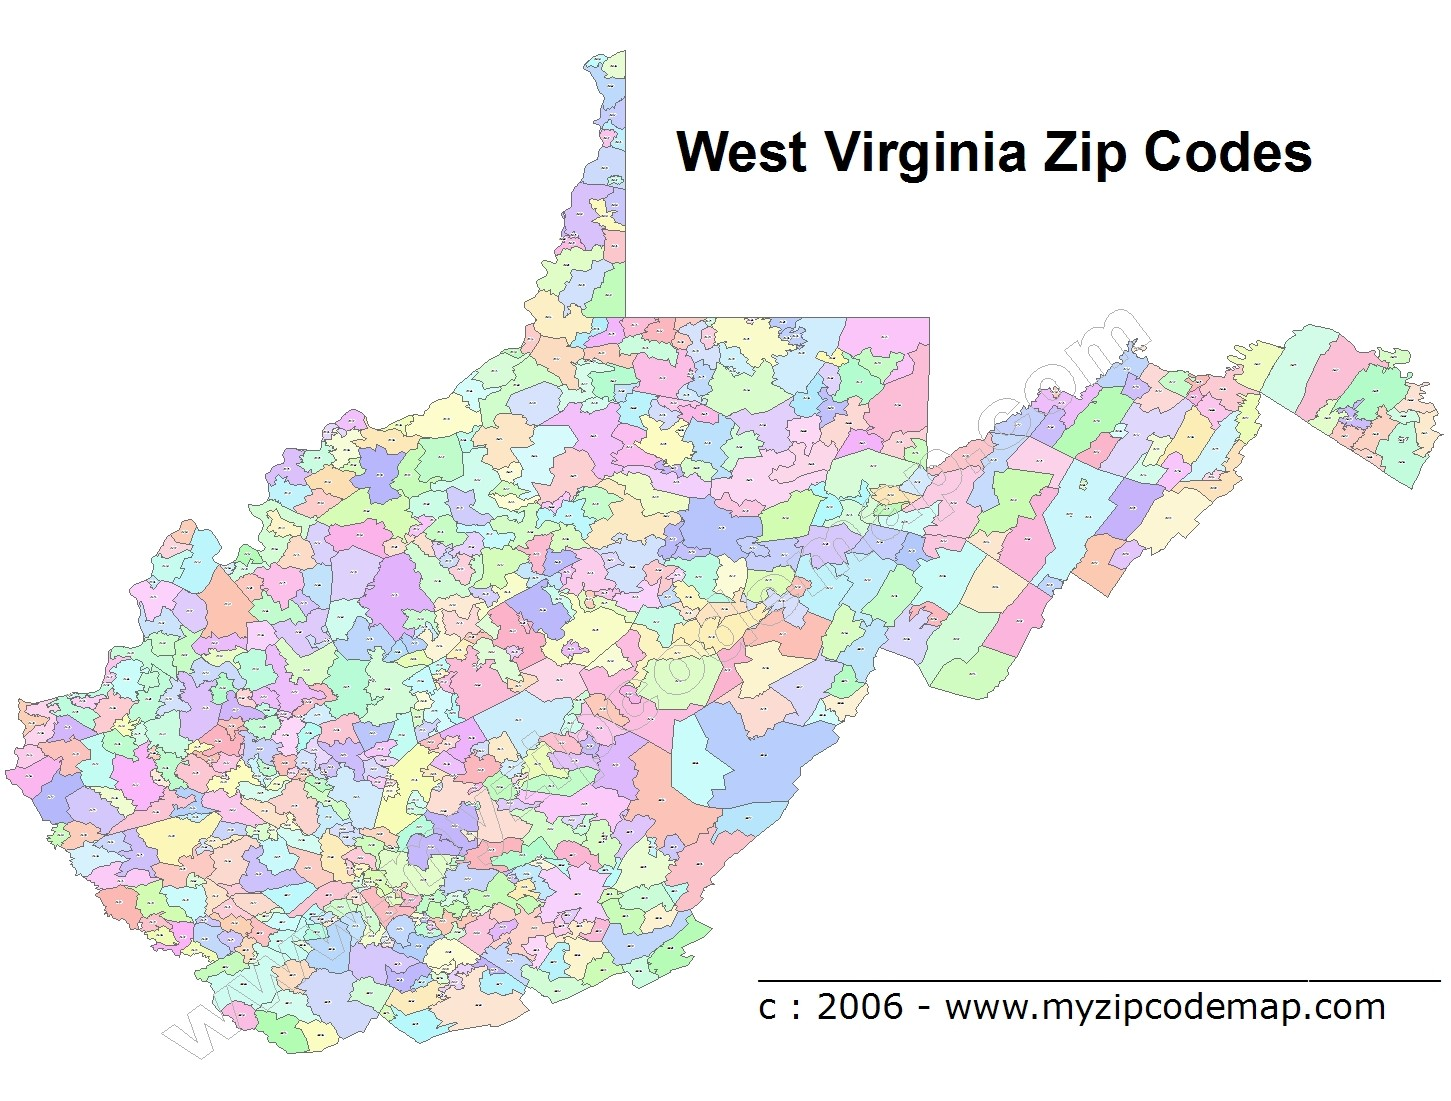 West Virginia (WV) Zip Code Map